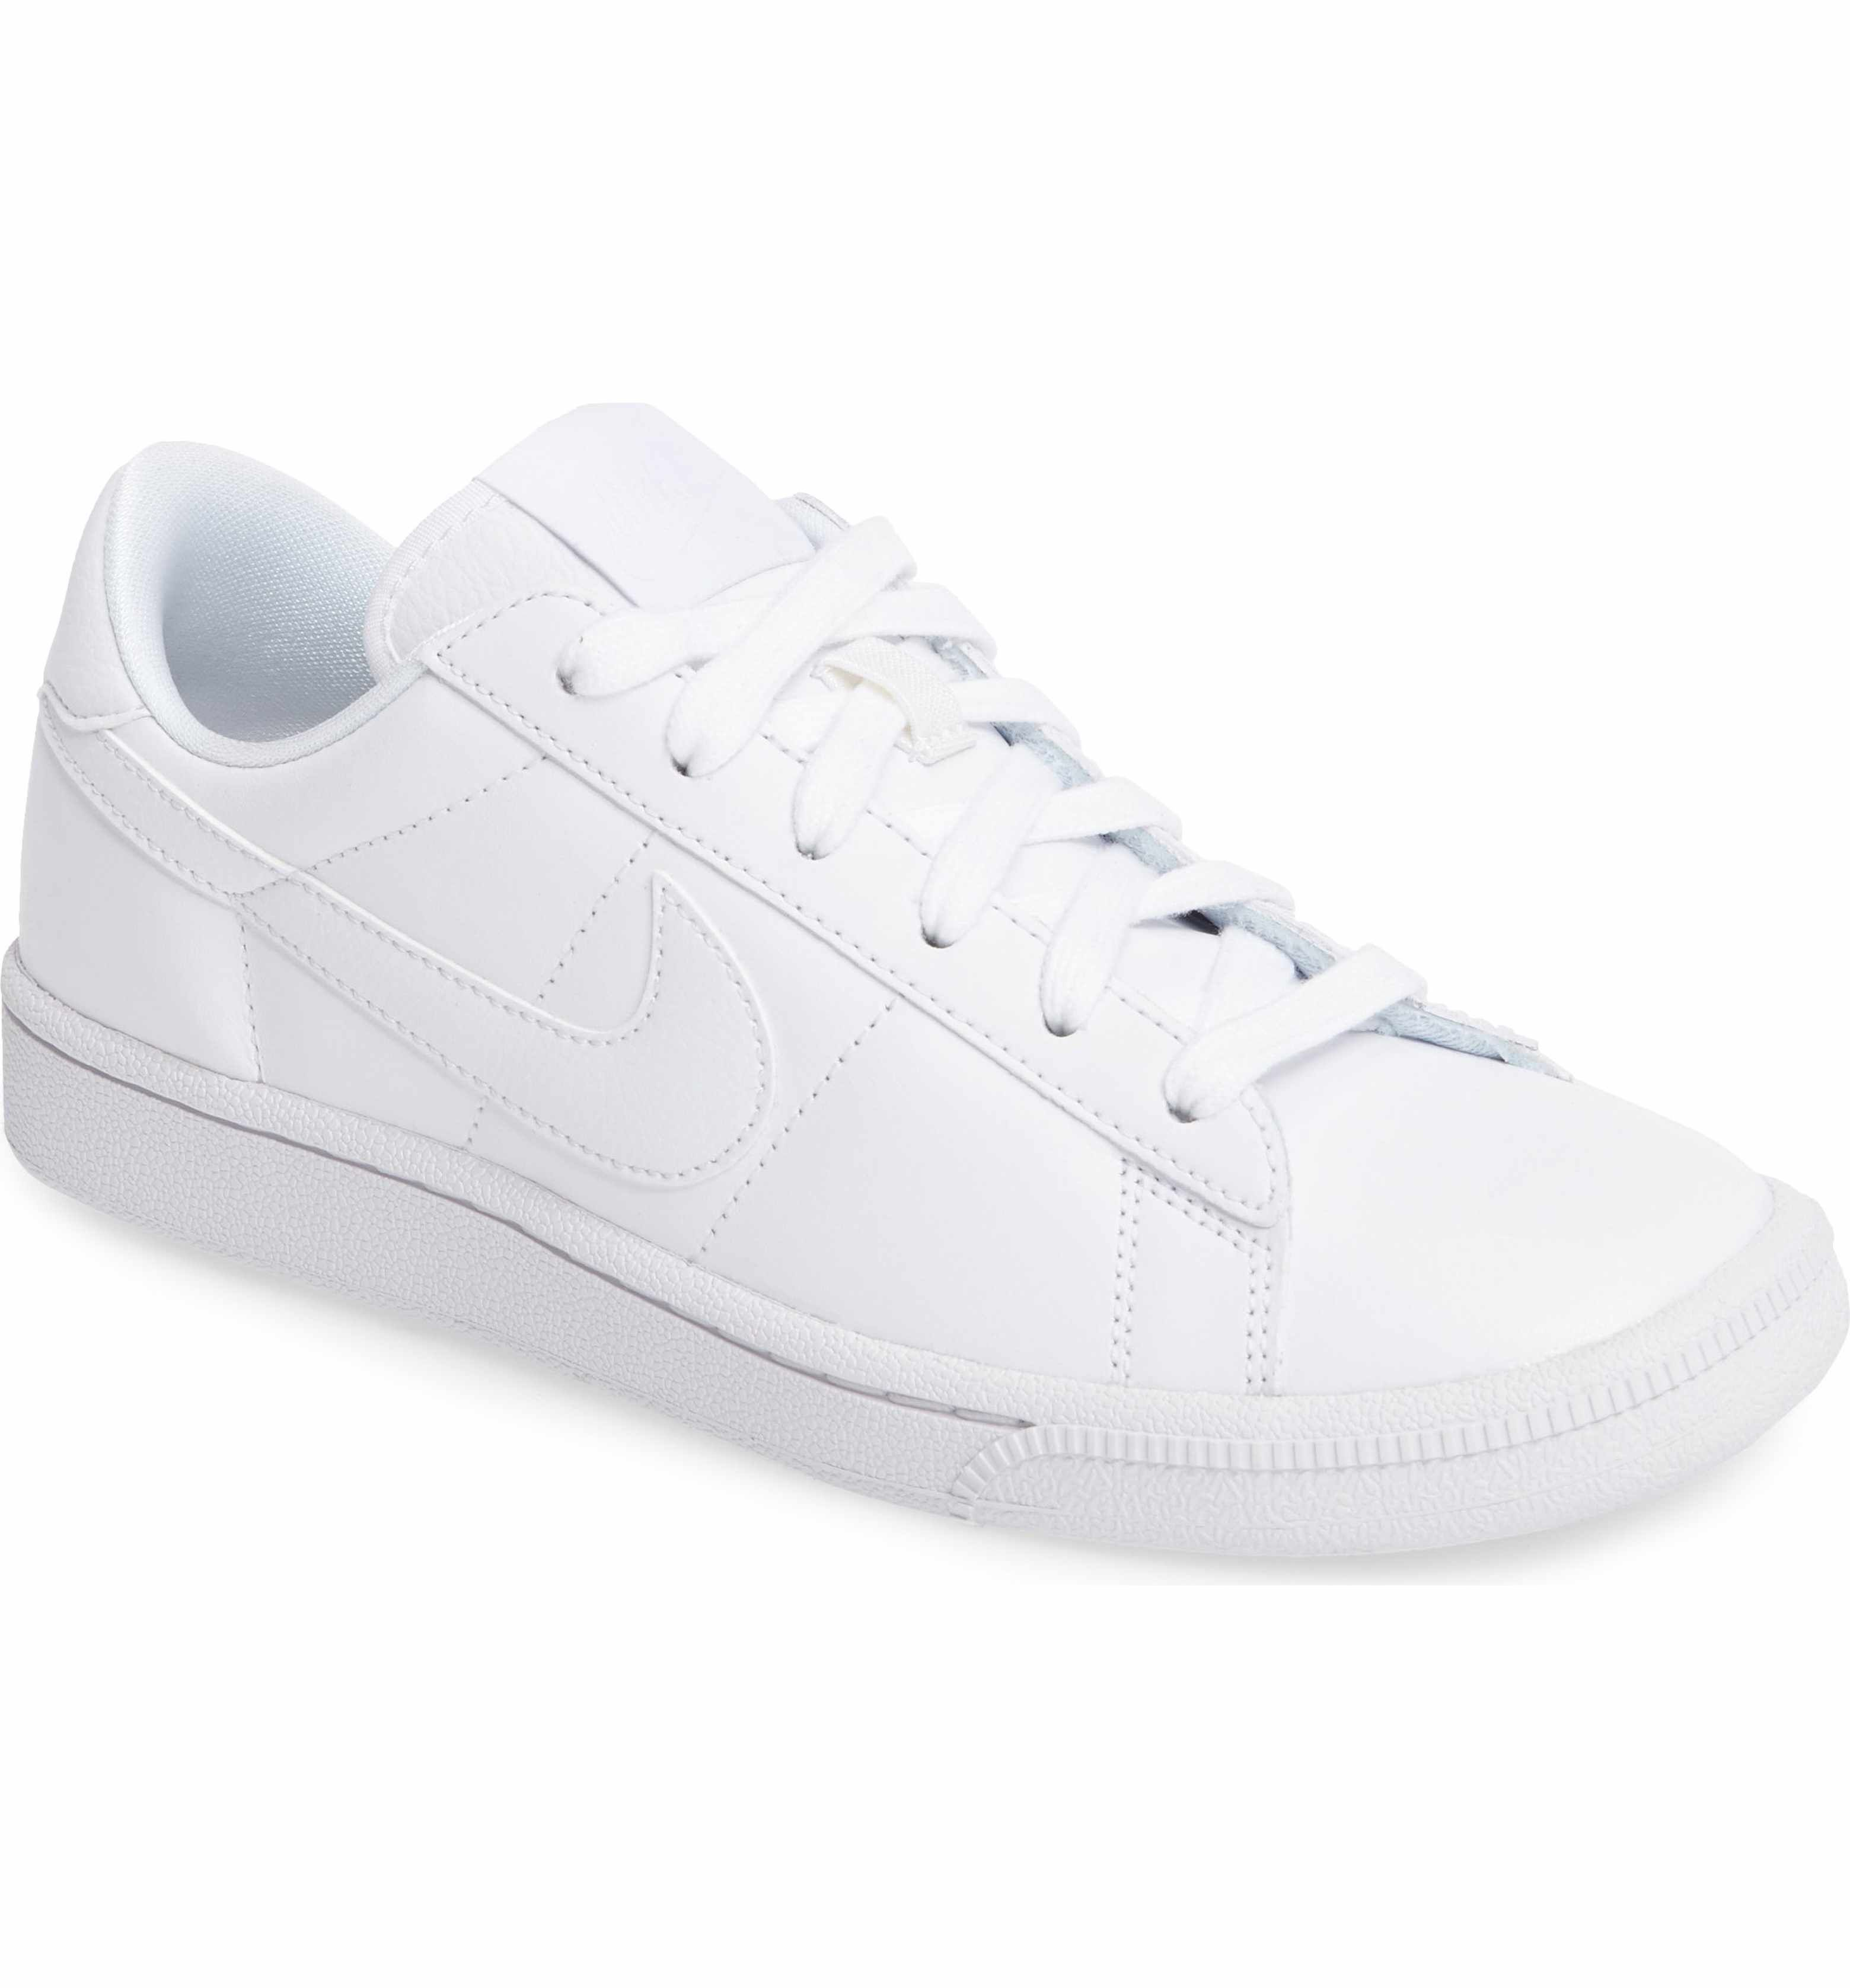 Main Image Nike Tennis Classic Sneaker Women White Leather Tennis Shoes Classic Sneakers White Sneakers Women